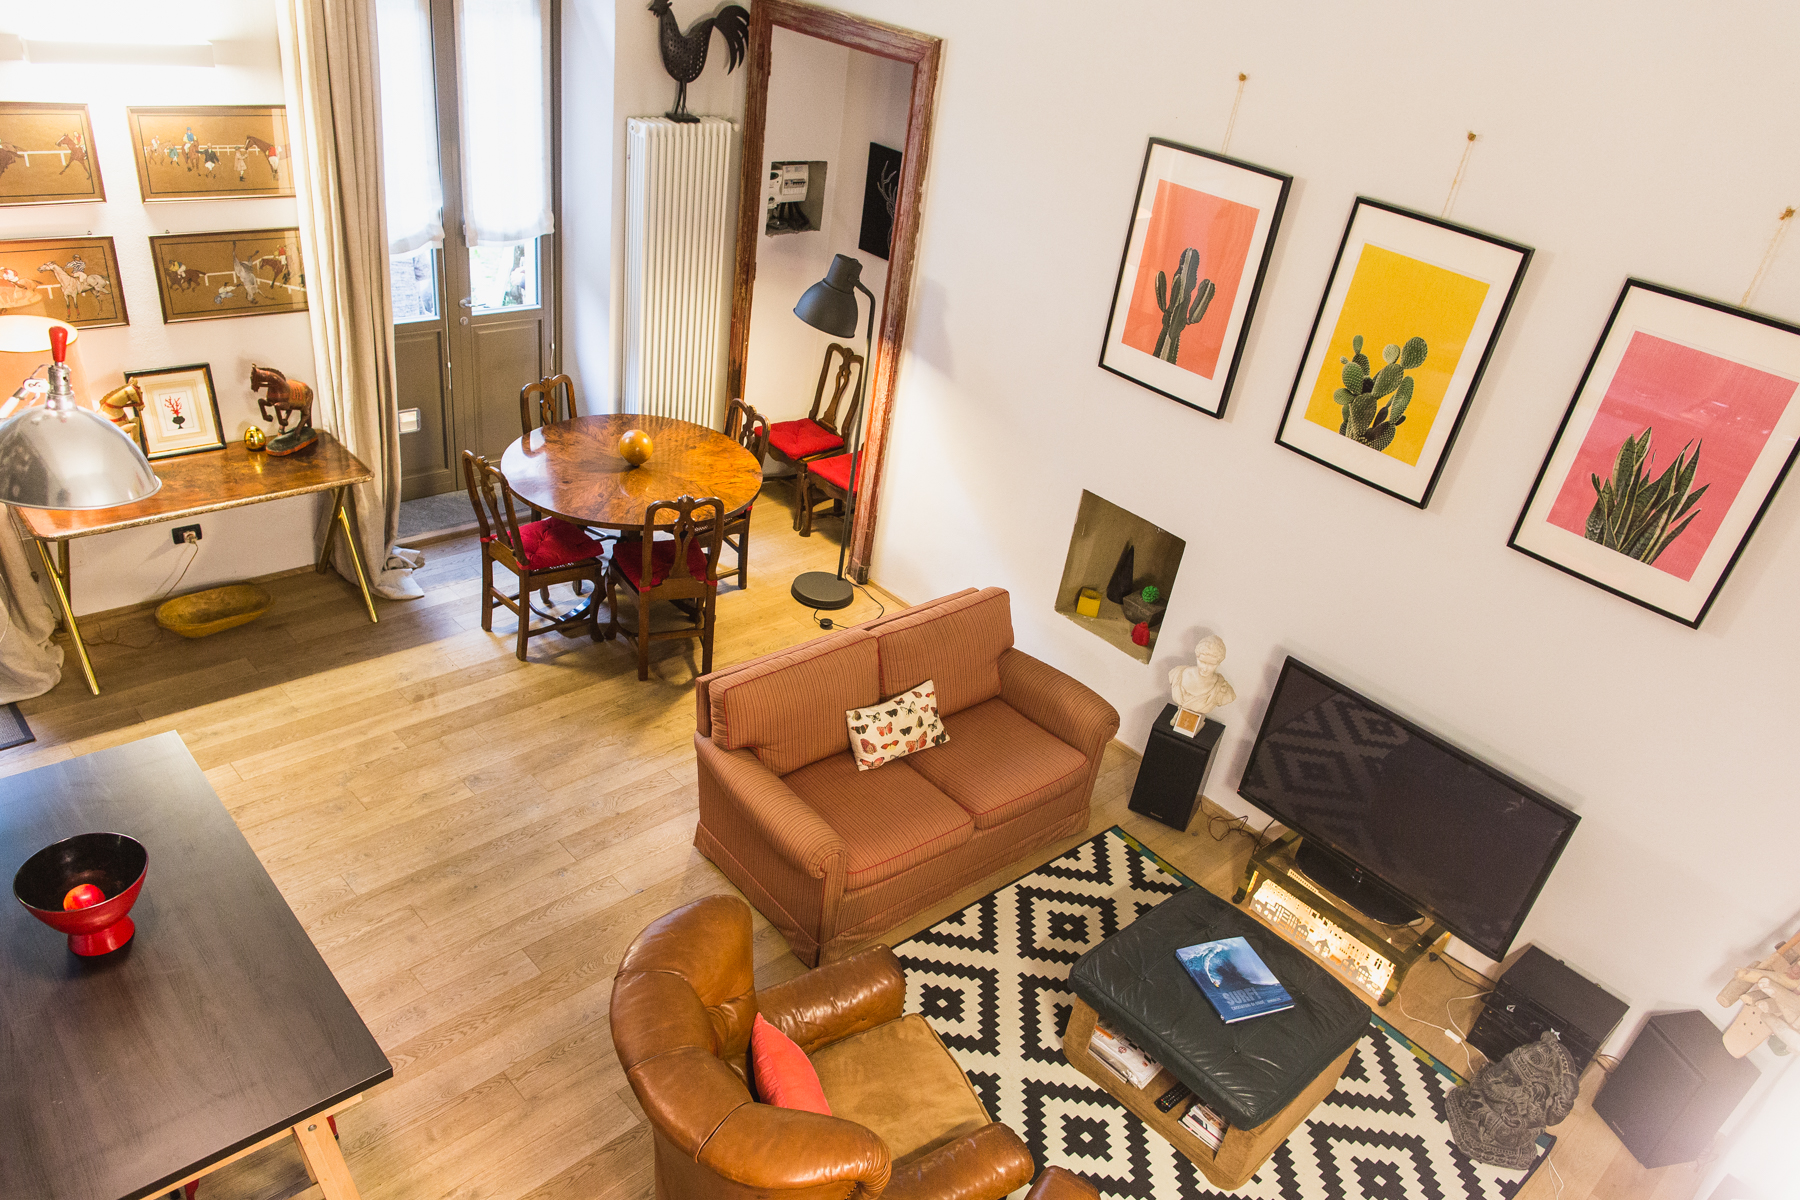 Additional photo for property listing at Charming Loft in San Salvario Via Madama Cristina Turin, Turin 10125 Italia